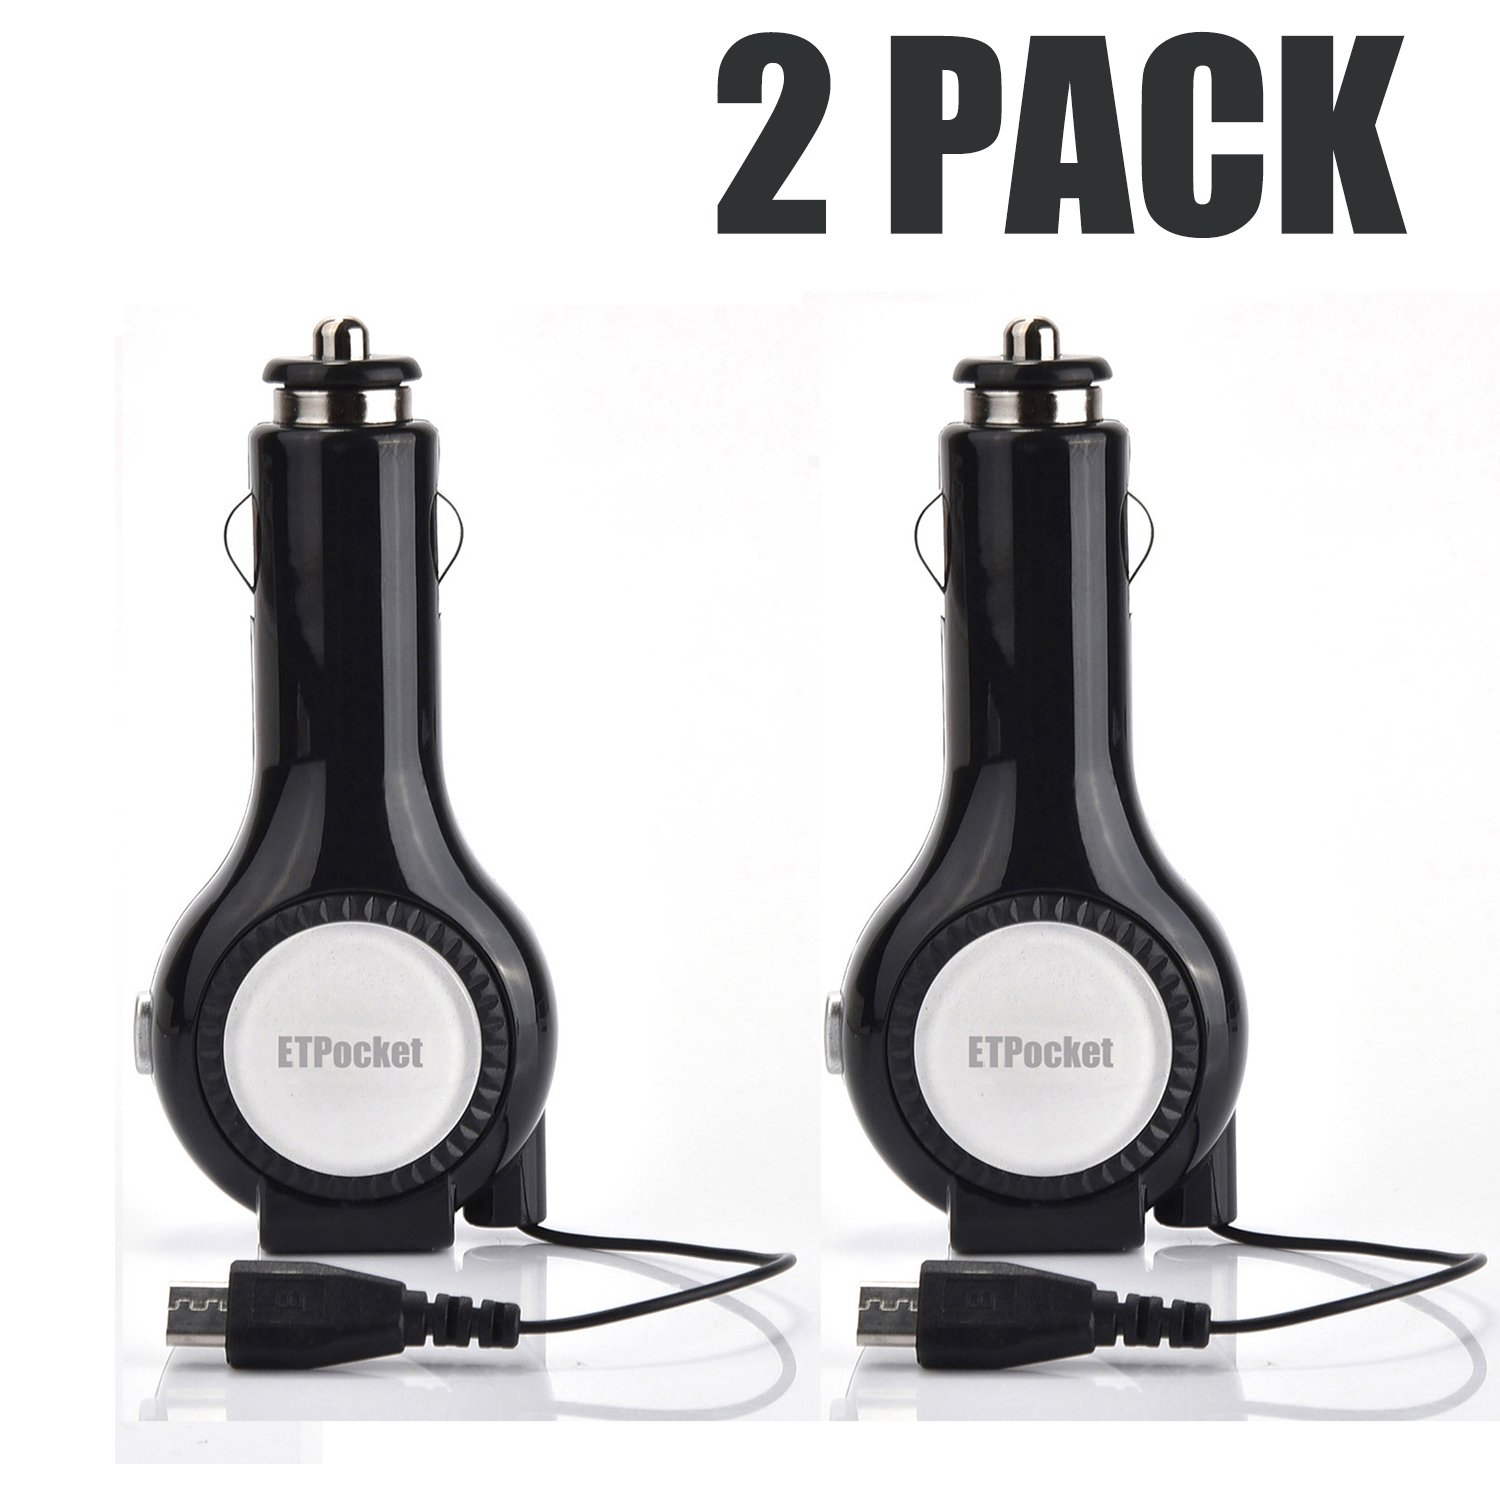 ETPocket Car Chargers, Tangle-free Retractable Micro USB Cable Car Charger With 1 USB Charging Port for Samsung S5 S4 S3 and Other Micro USB Device (2 Pack Black)